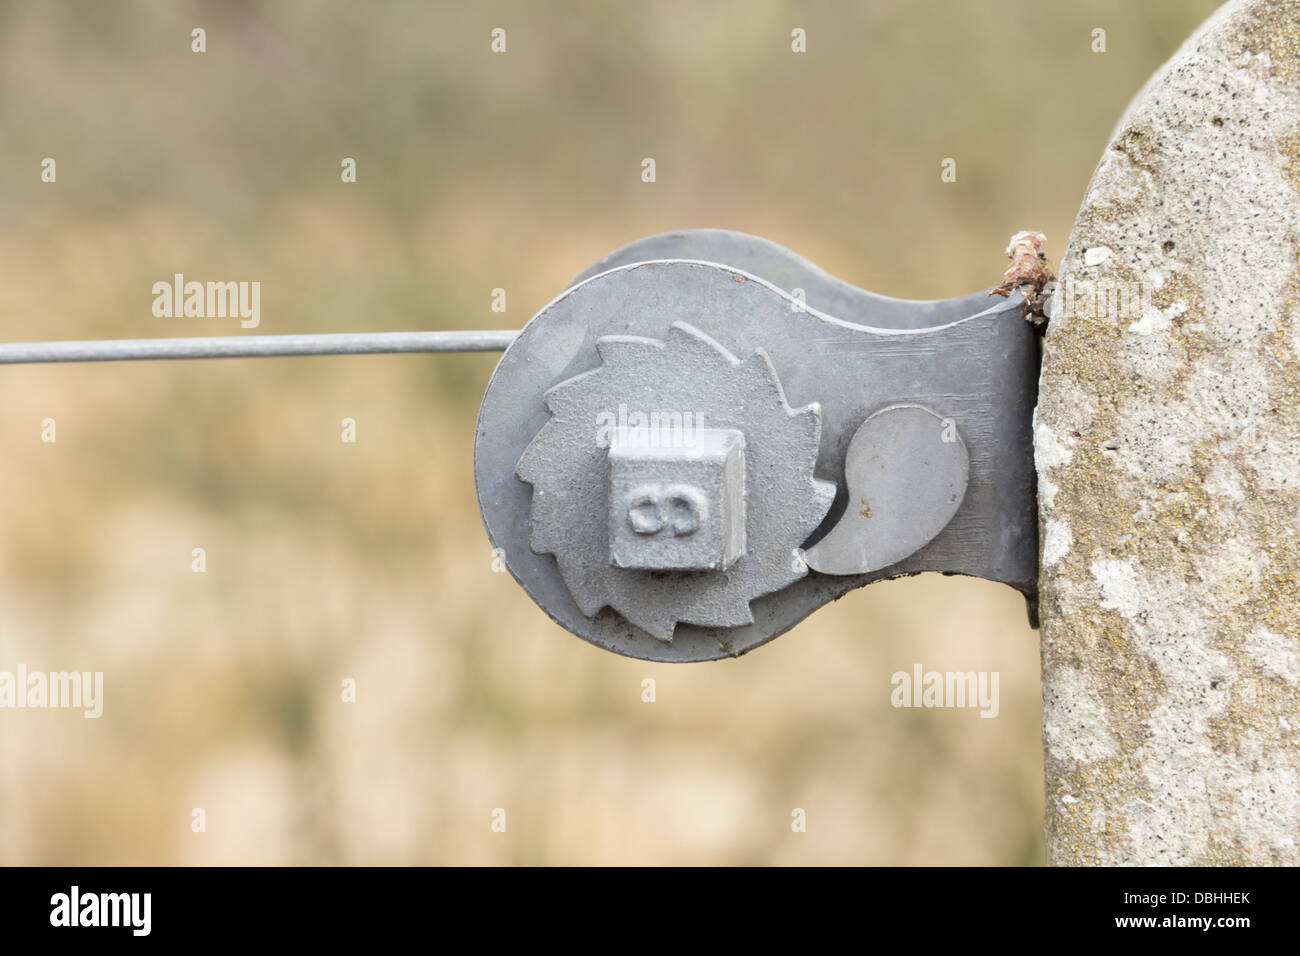 Wire fence tensioner ratchet device mounted on a concrete post and ...